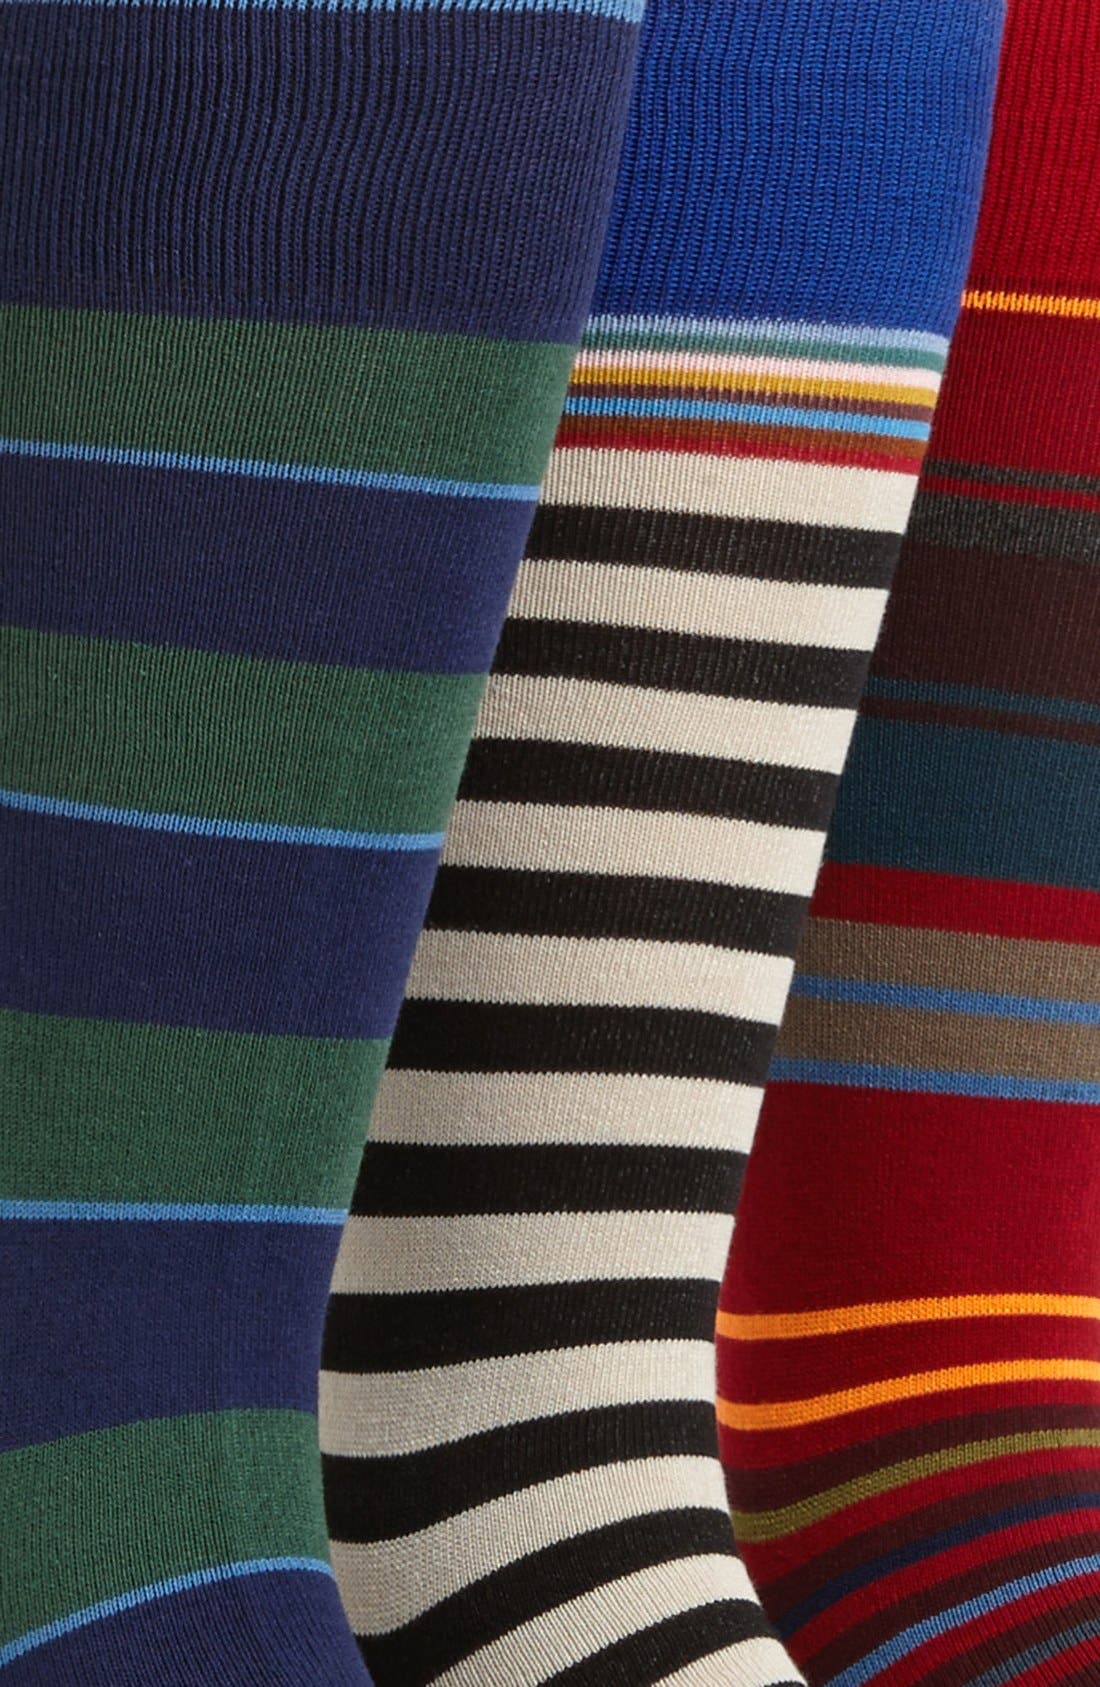 Alternate Image 2  - Paul Smith Accessories Socks (3-Pack)